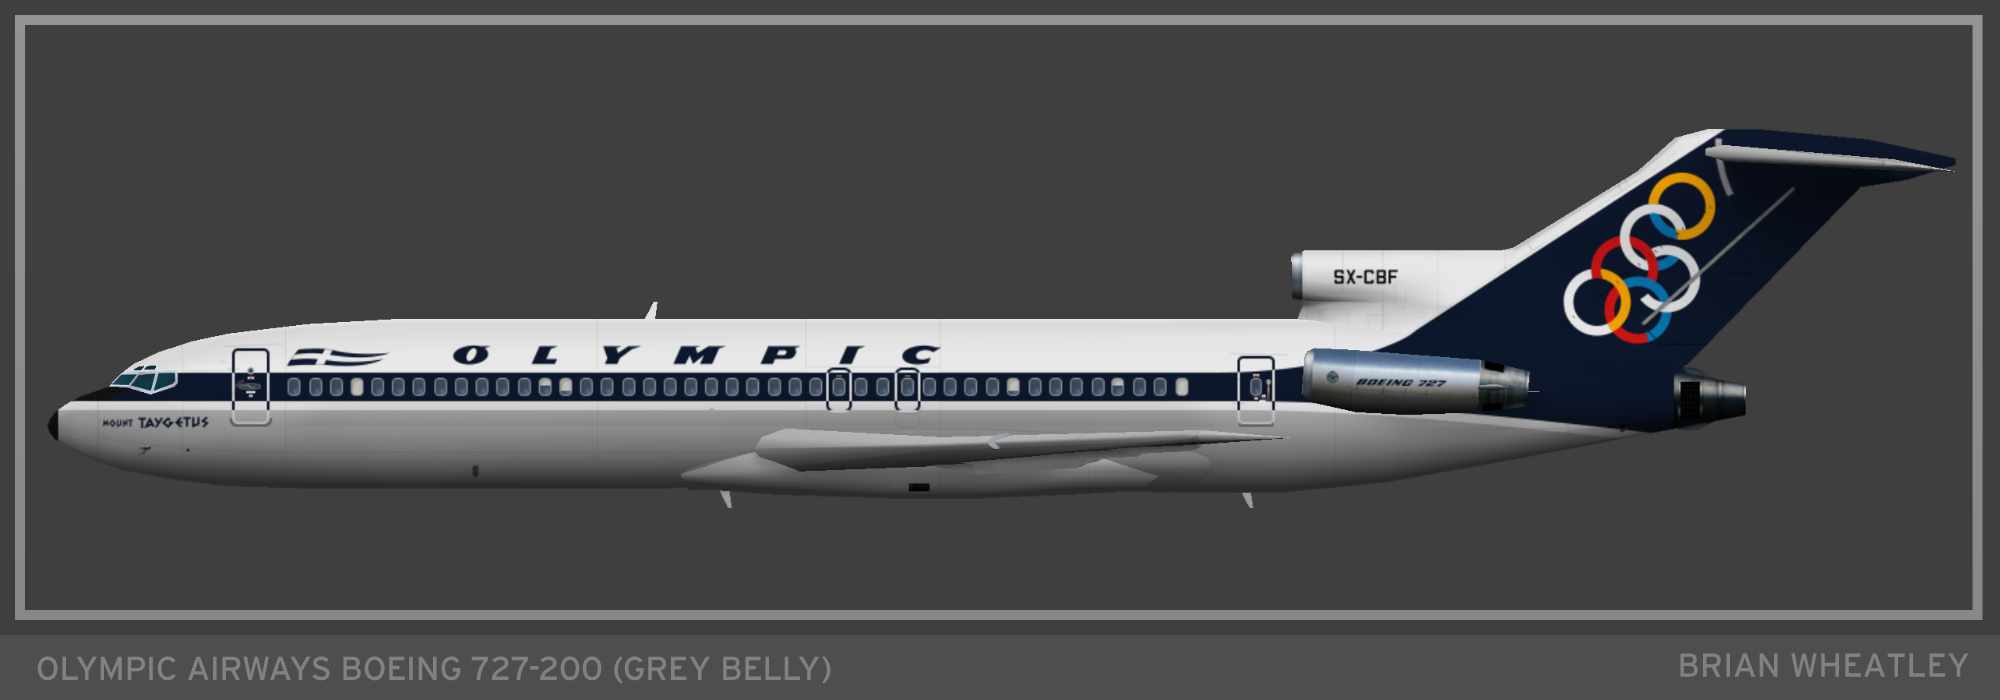 brw_b72s_olympicairways-grey